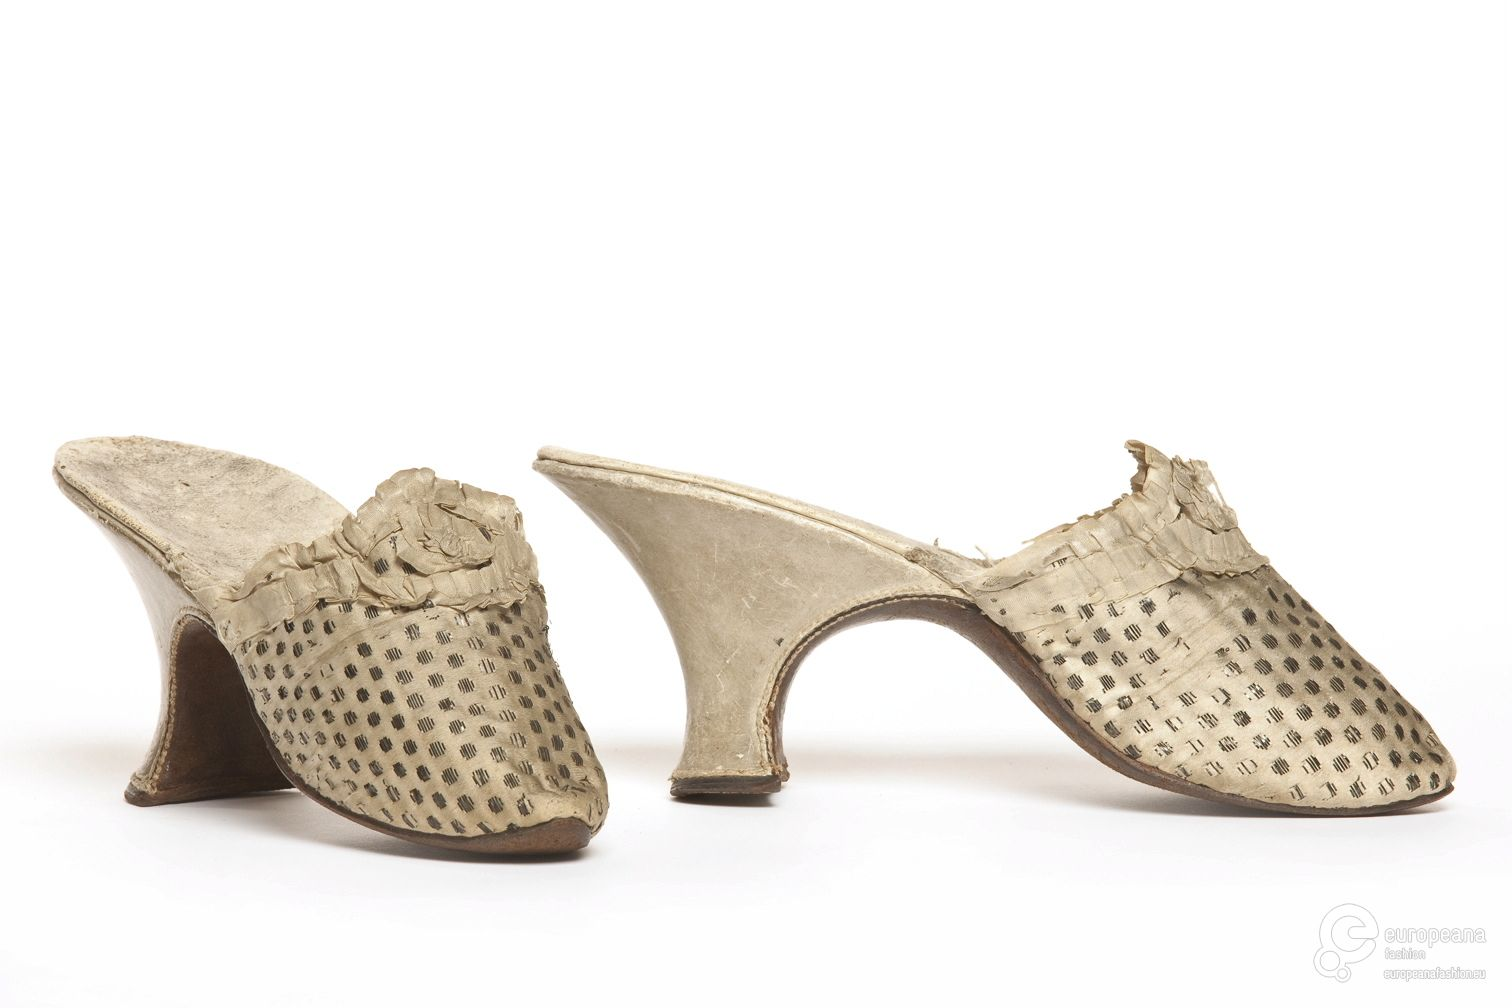 Pair of lady's mules, 1770-1780. Cream silk satin embroidered with dots in silver metallic thread, leather.